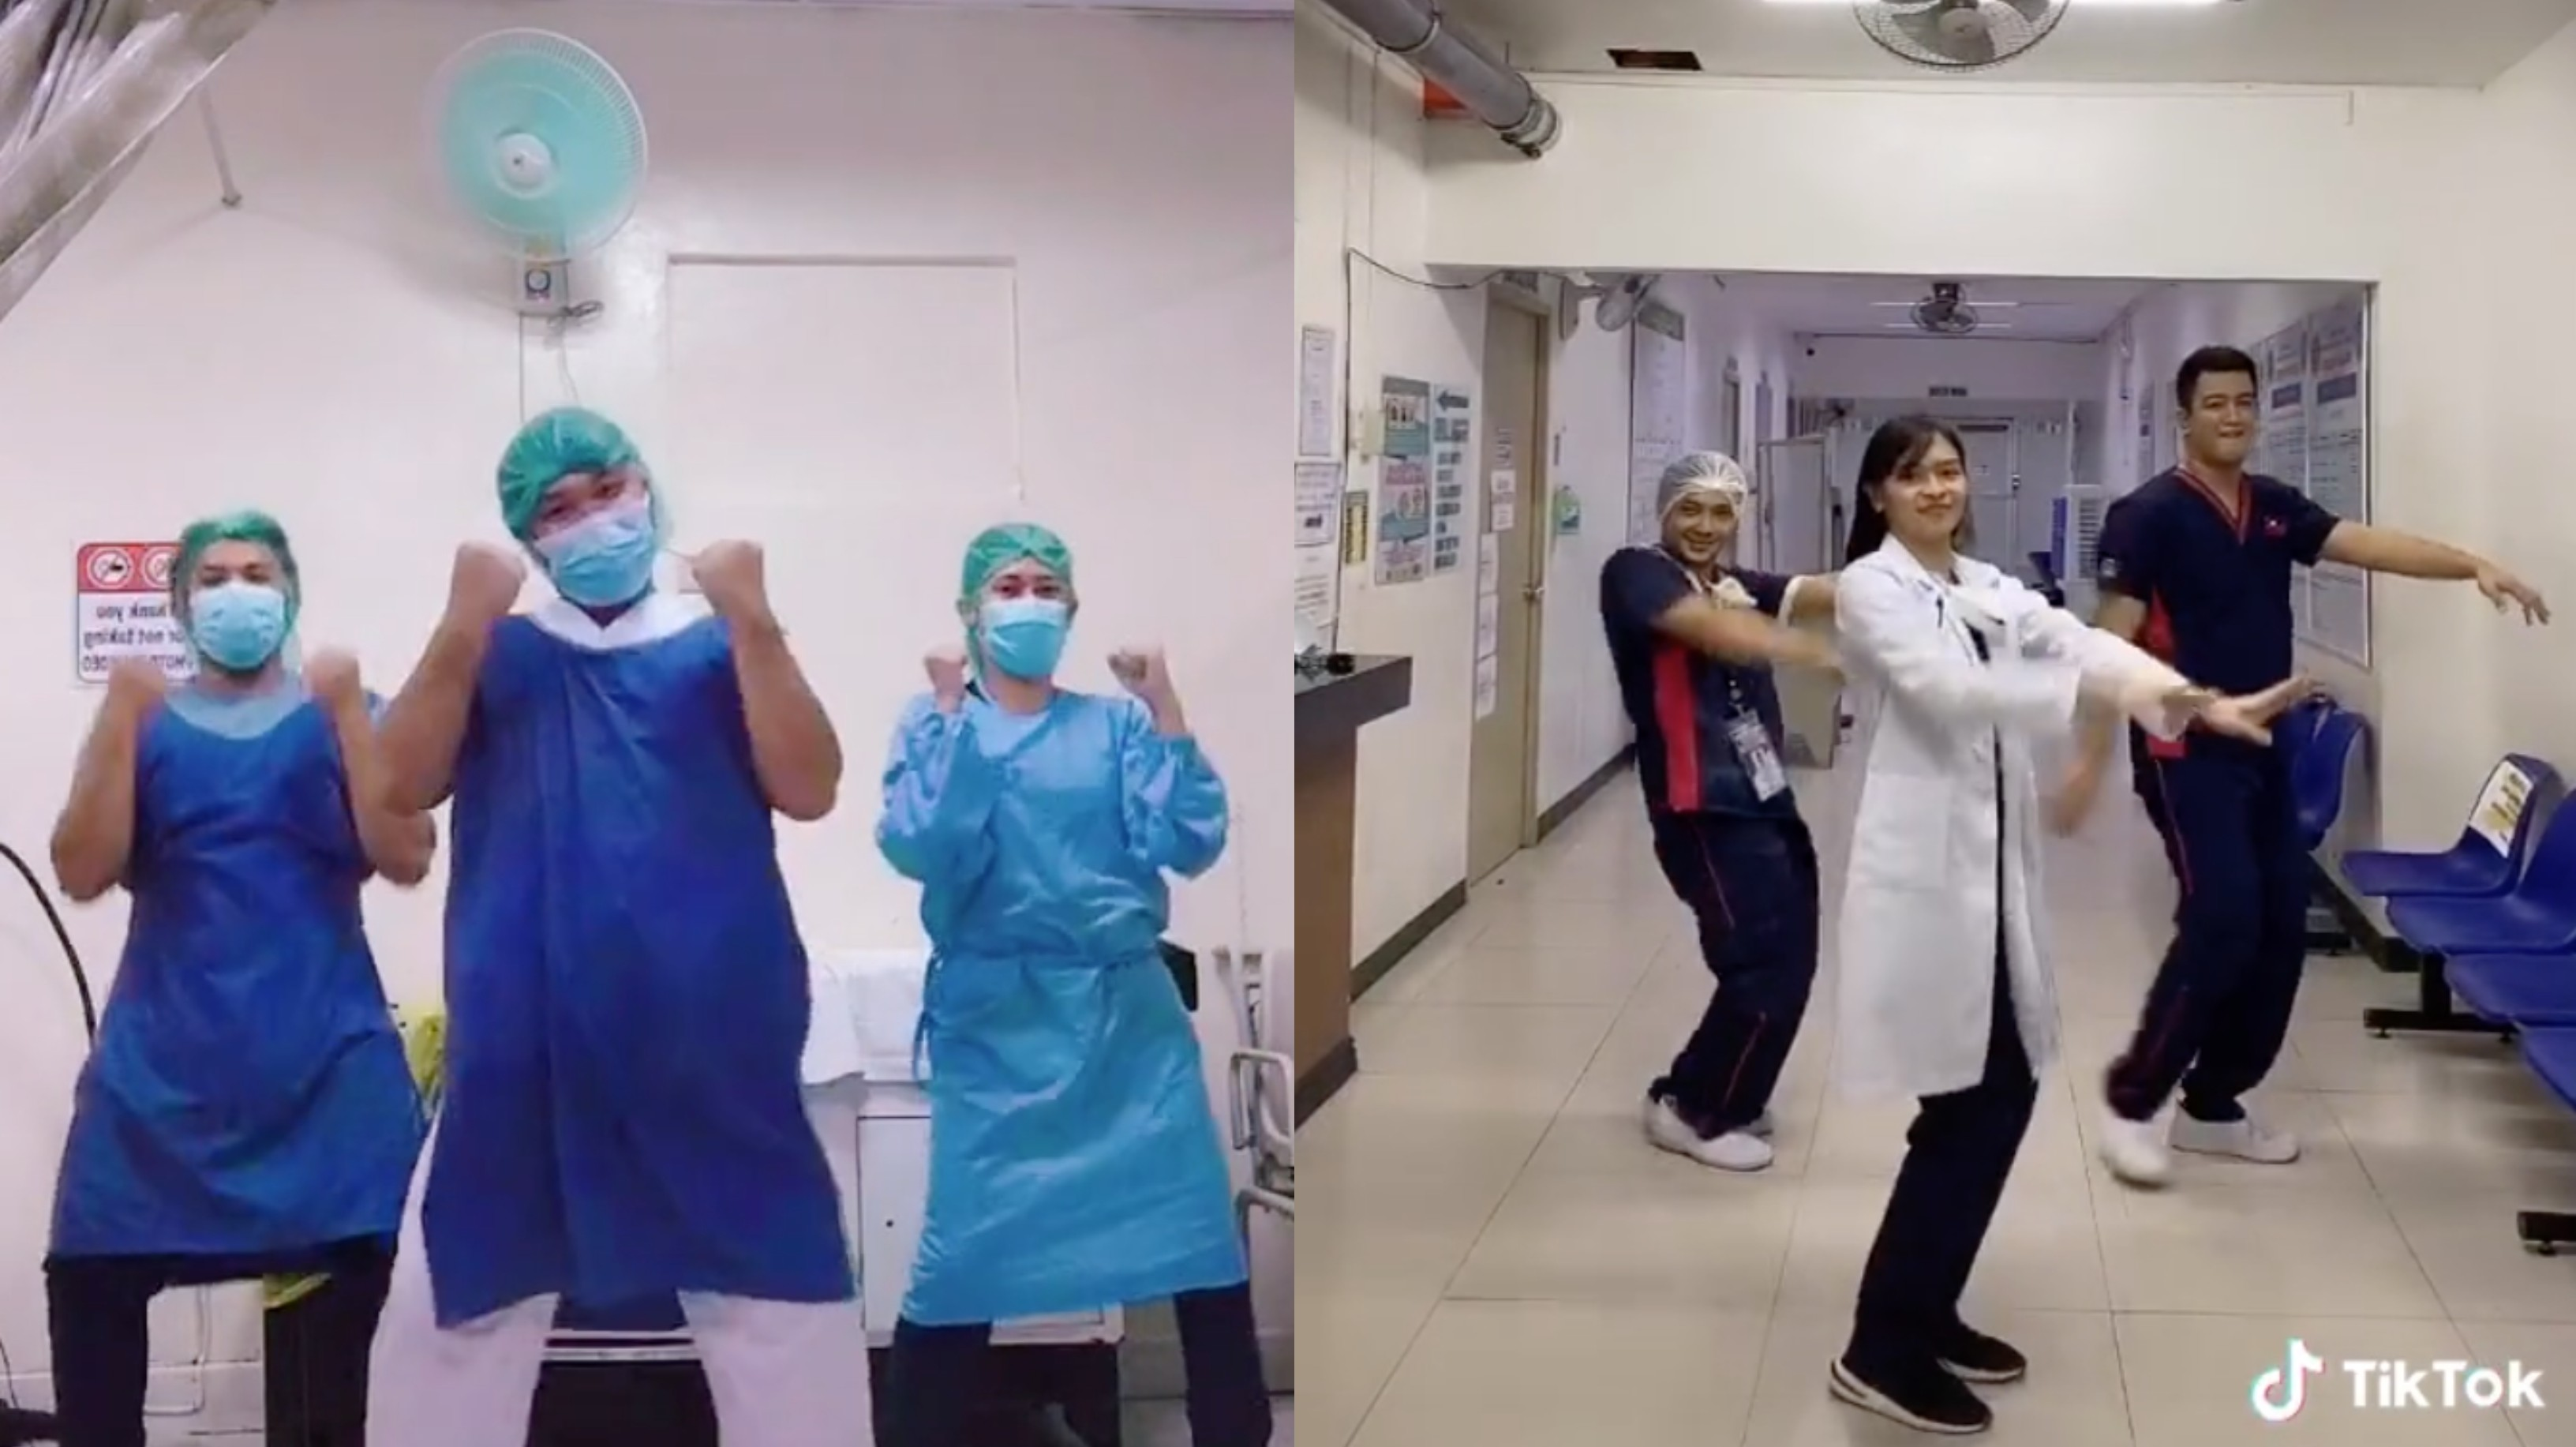 These Healthcare Workers Turn To Tiktok For Some Comic Relief